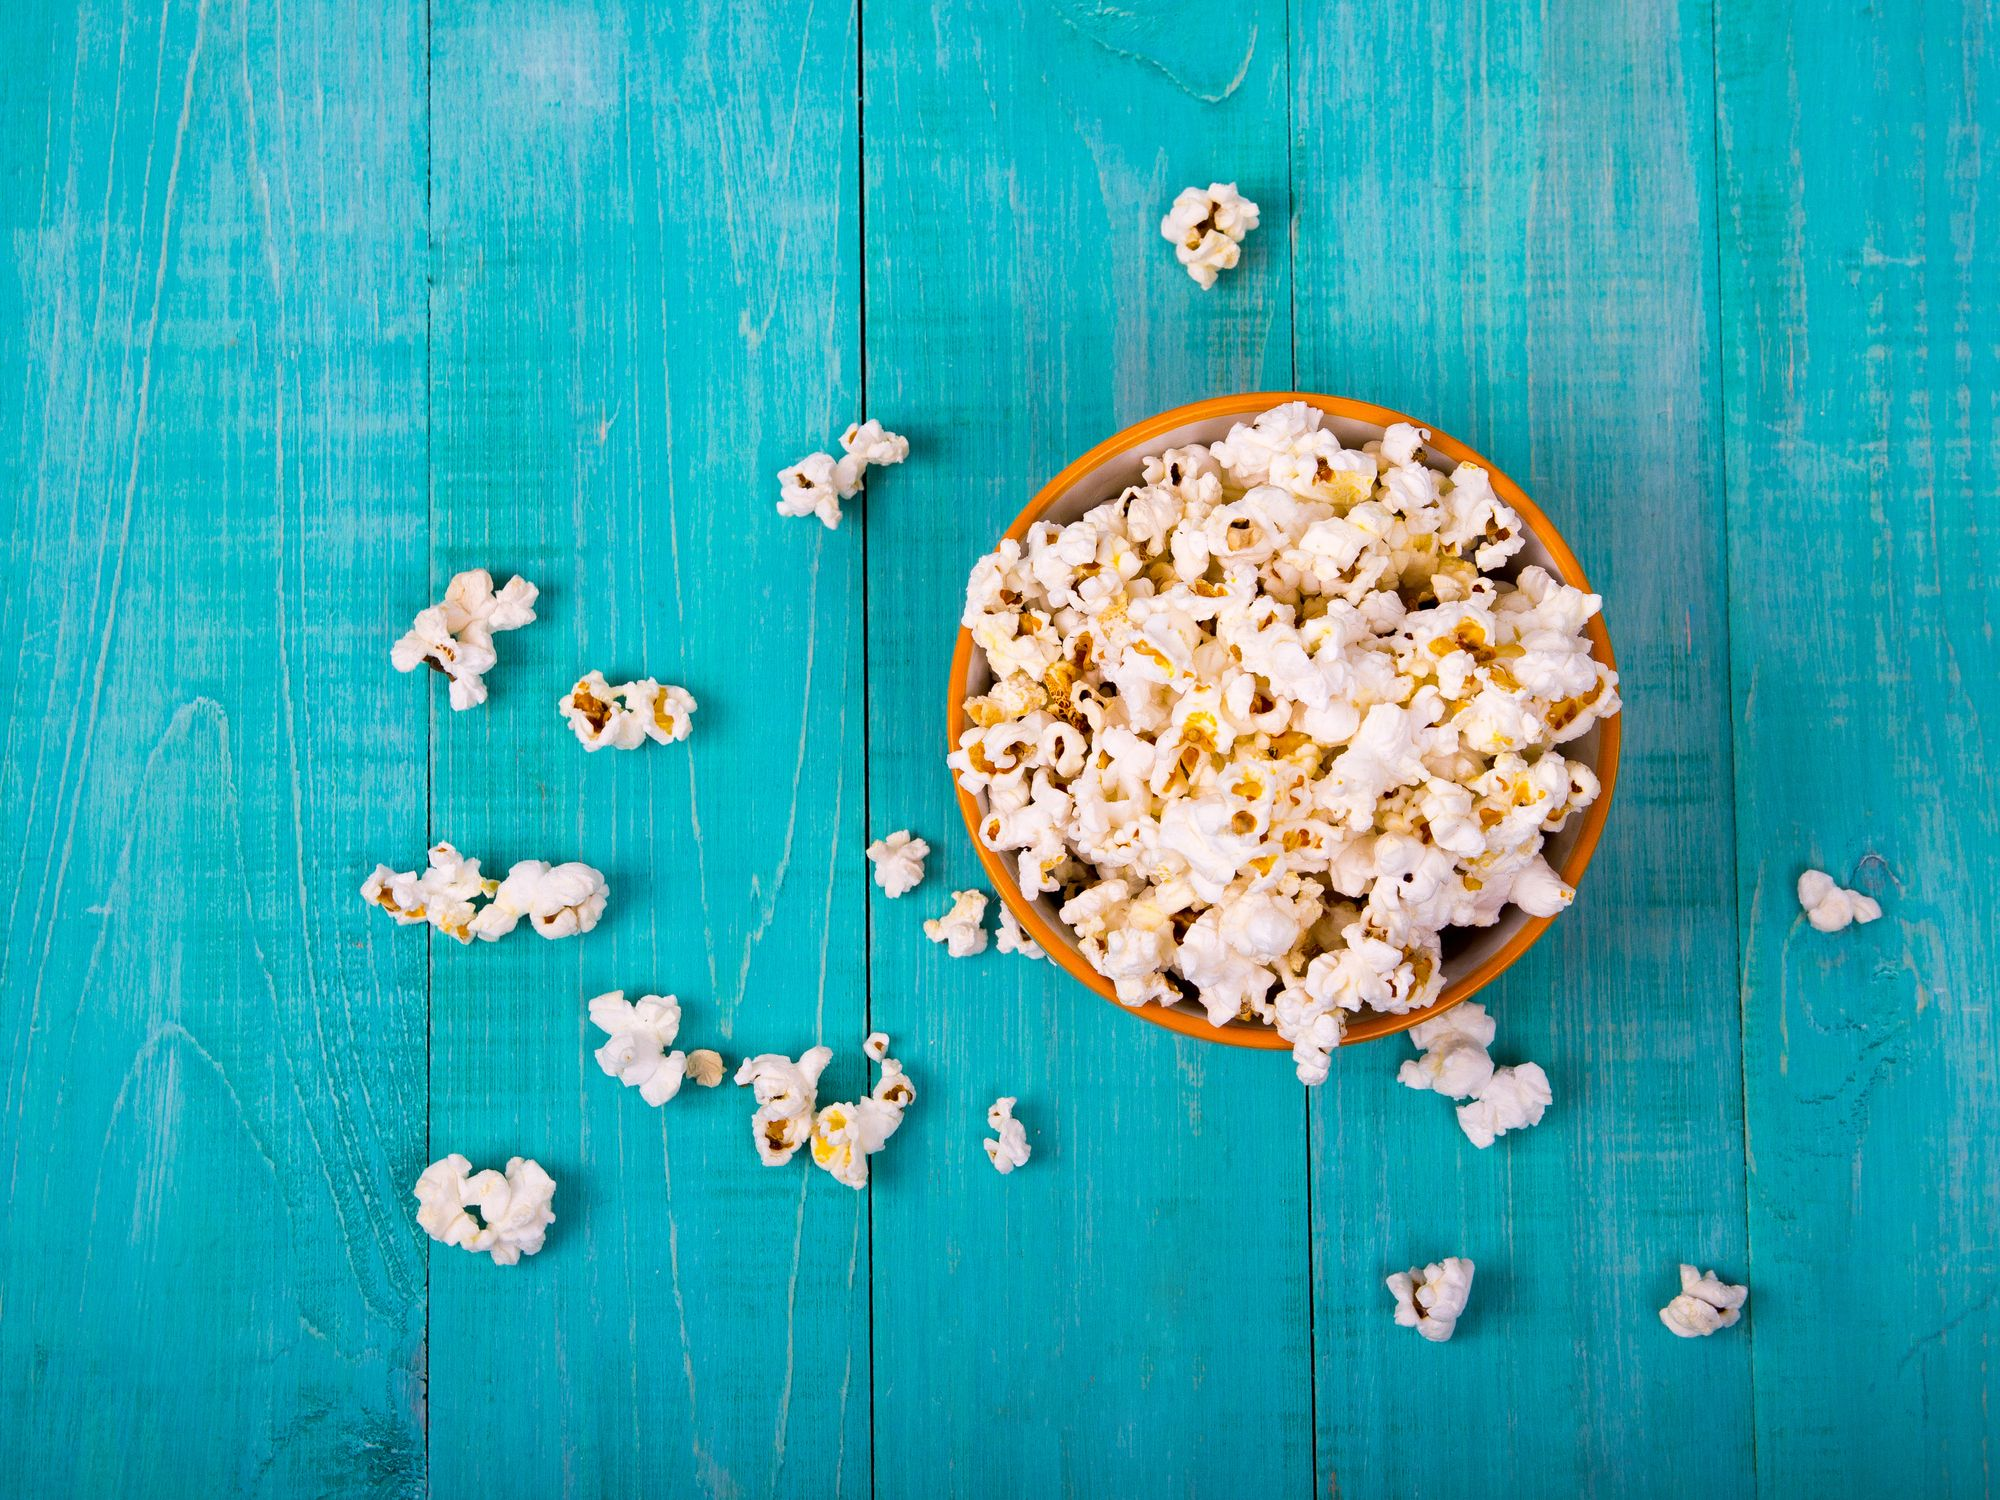 Is Popcorn Gluten Free? Here's What Nutritionists Have To Say